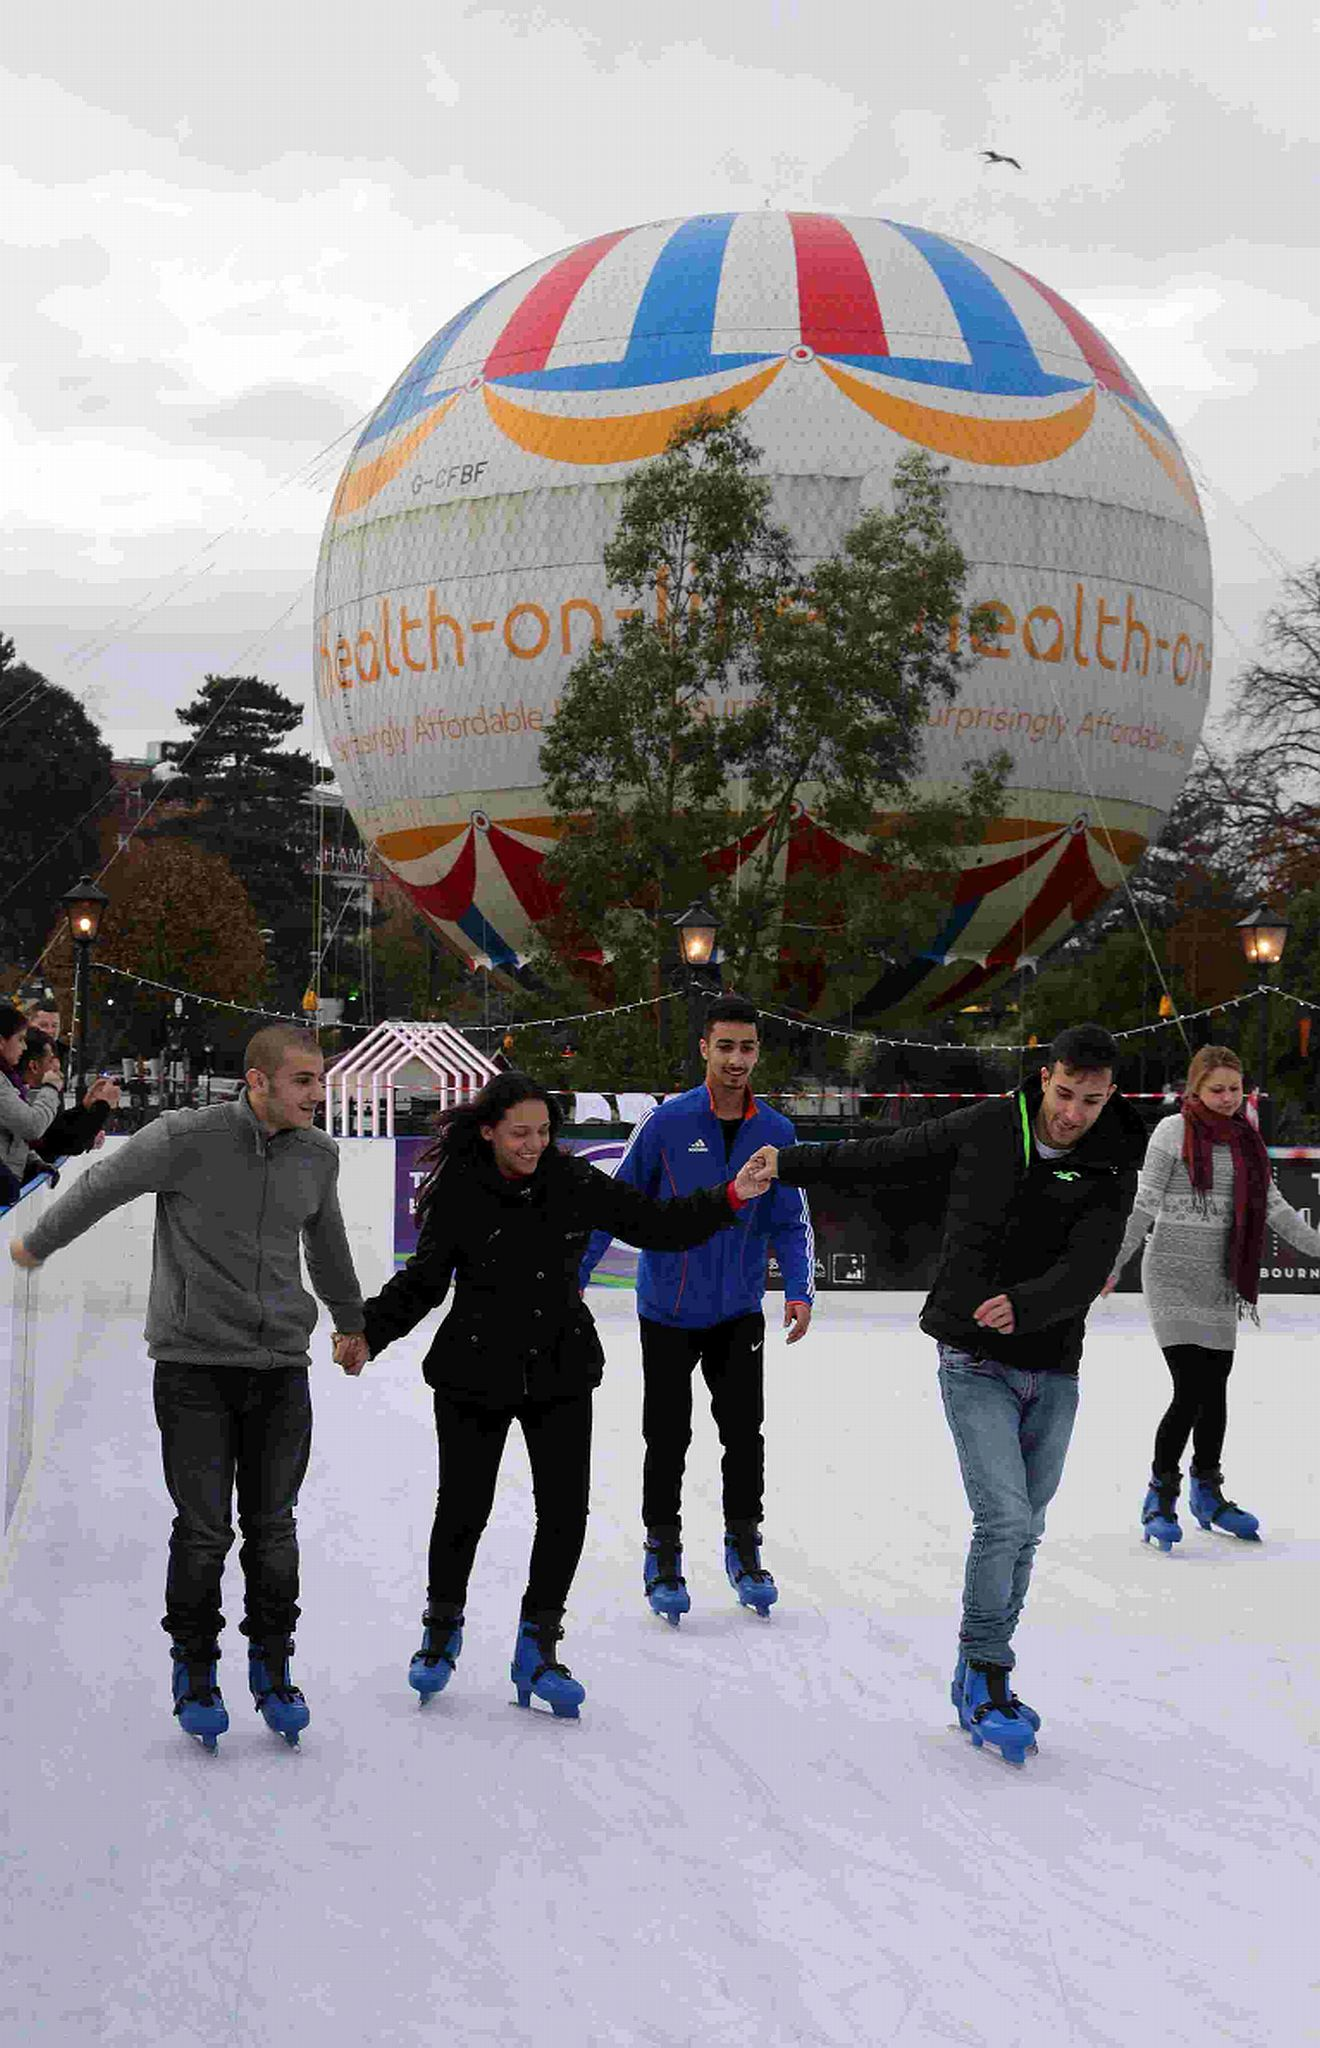 Give us permanent ice rink: hundreds sign petition to bring skating back to Bournemouth for good